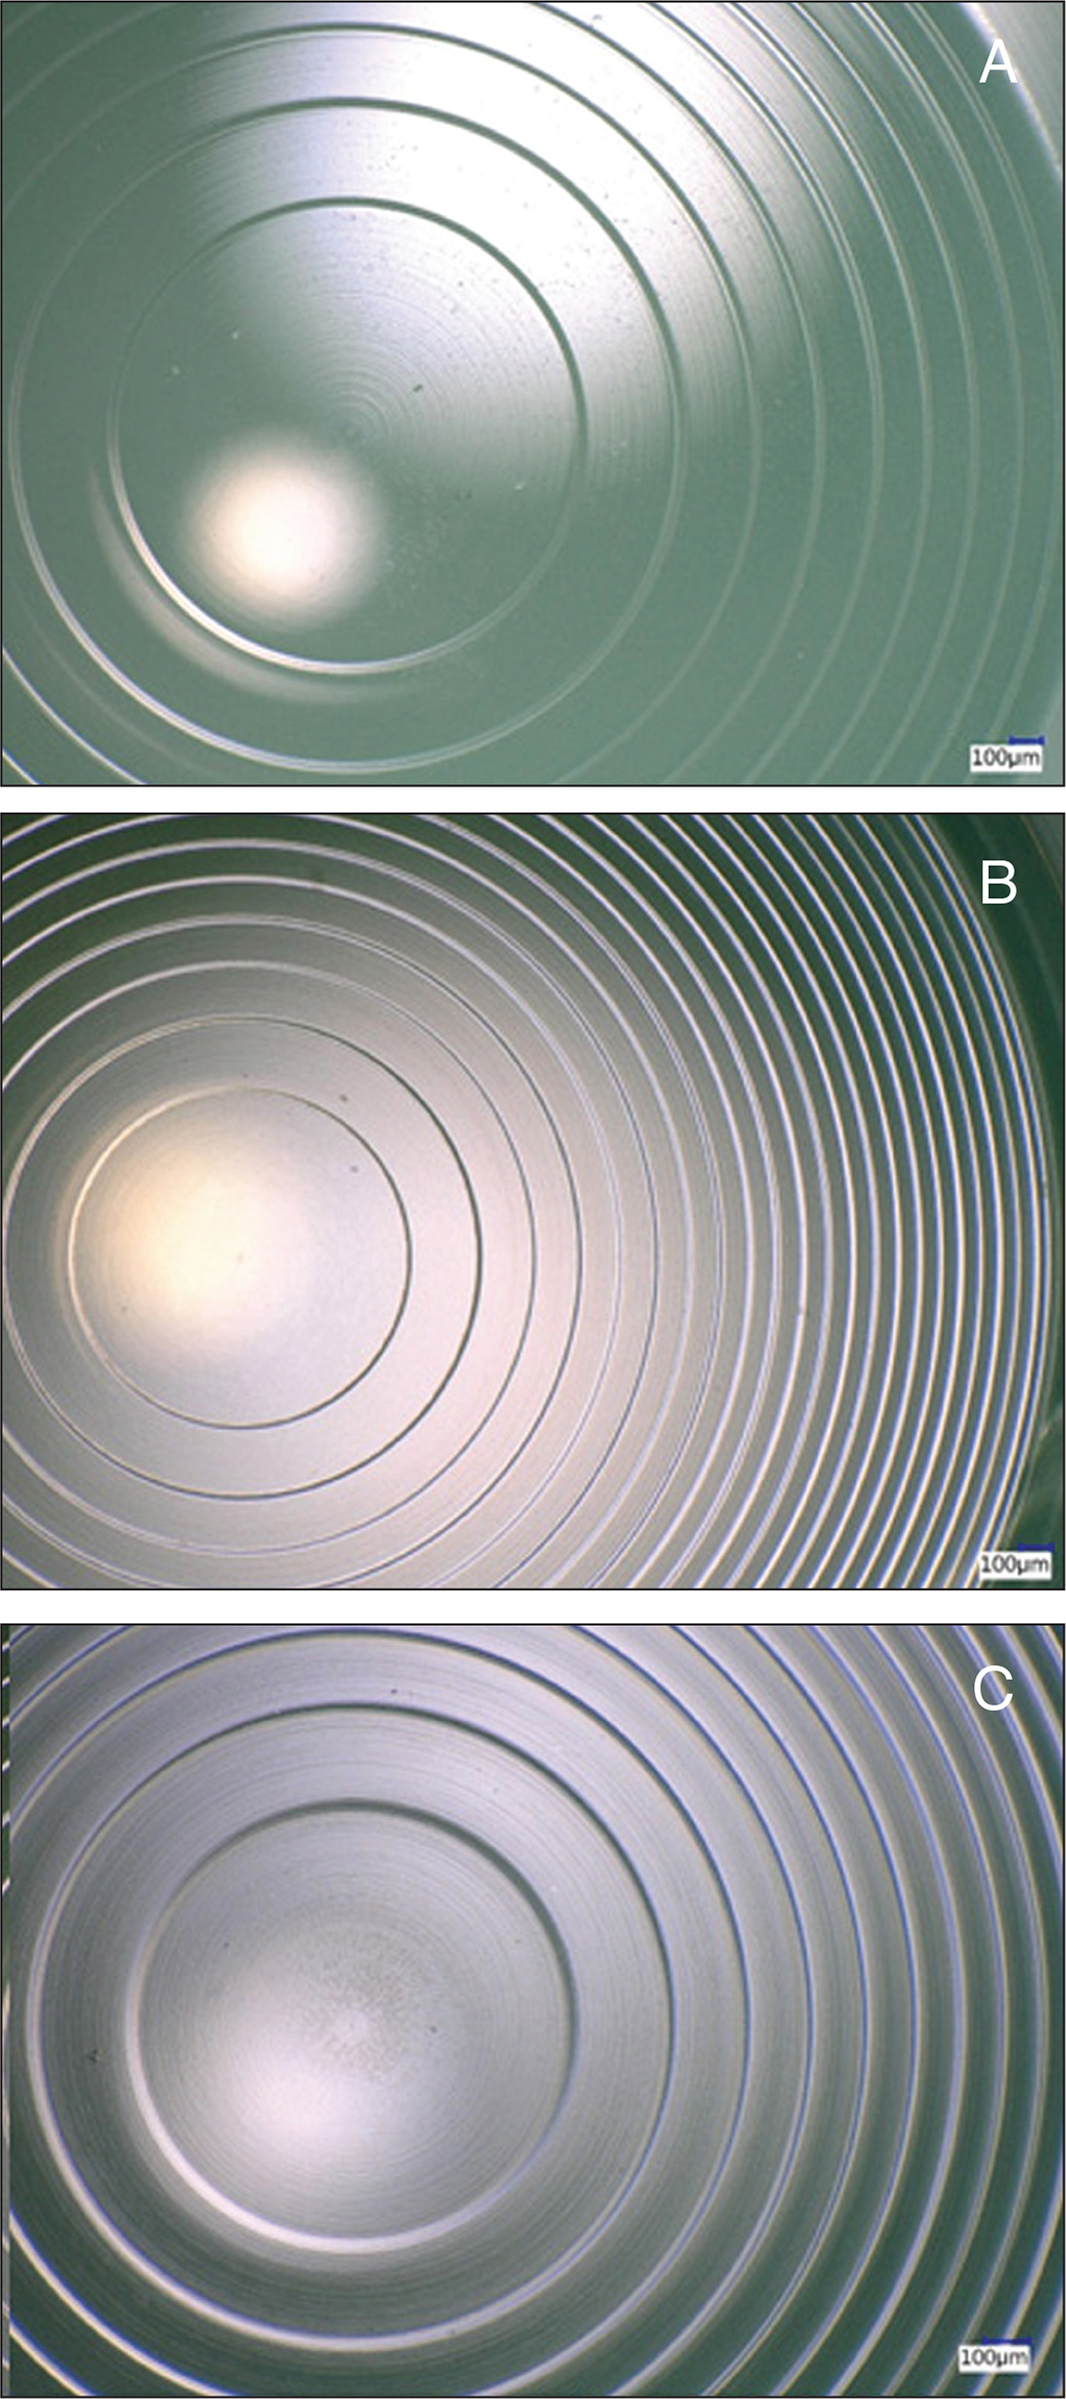 Microscopy pictures of the intraocular lens (IOL) surface: (A) extended depth of focus IOL; (B) trifocal IOL; and (C) bifocal IOL.